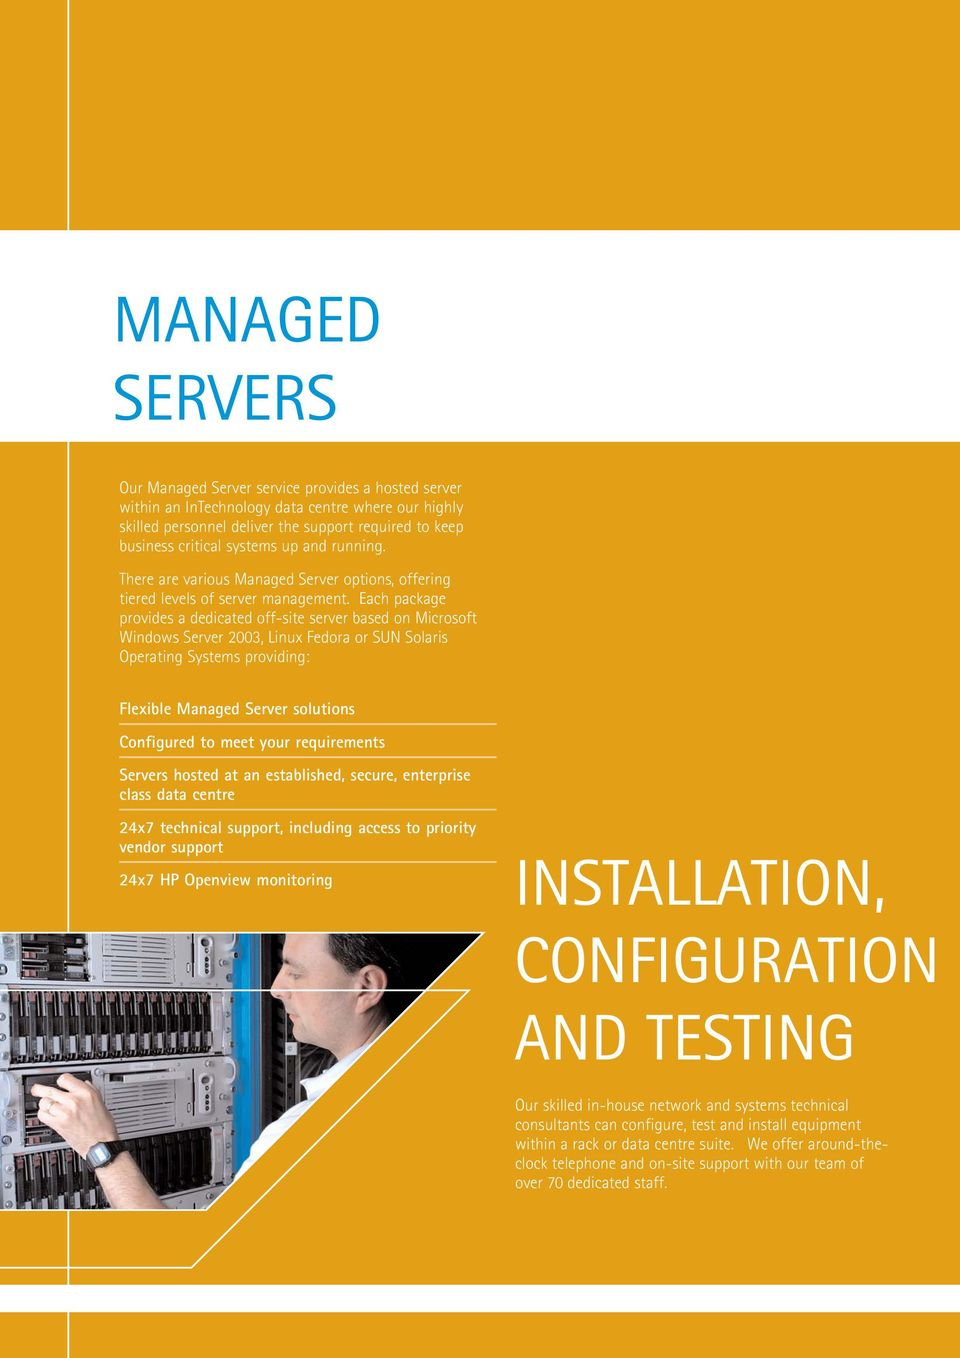 Each package provides a dedicated off-site server based on Microsoft Windows Server 2003, Linux Fedora or SUN Solaris Operating Systems providing: Flexible Managed Server solutions Configured to meet